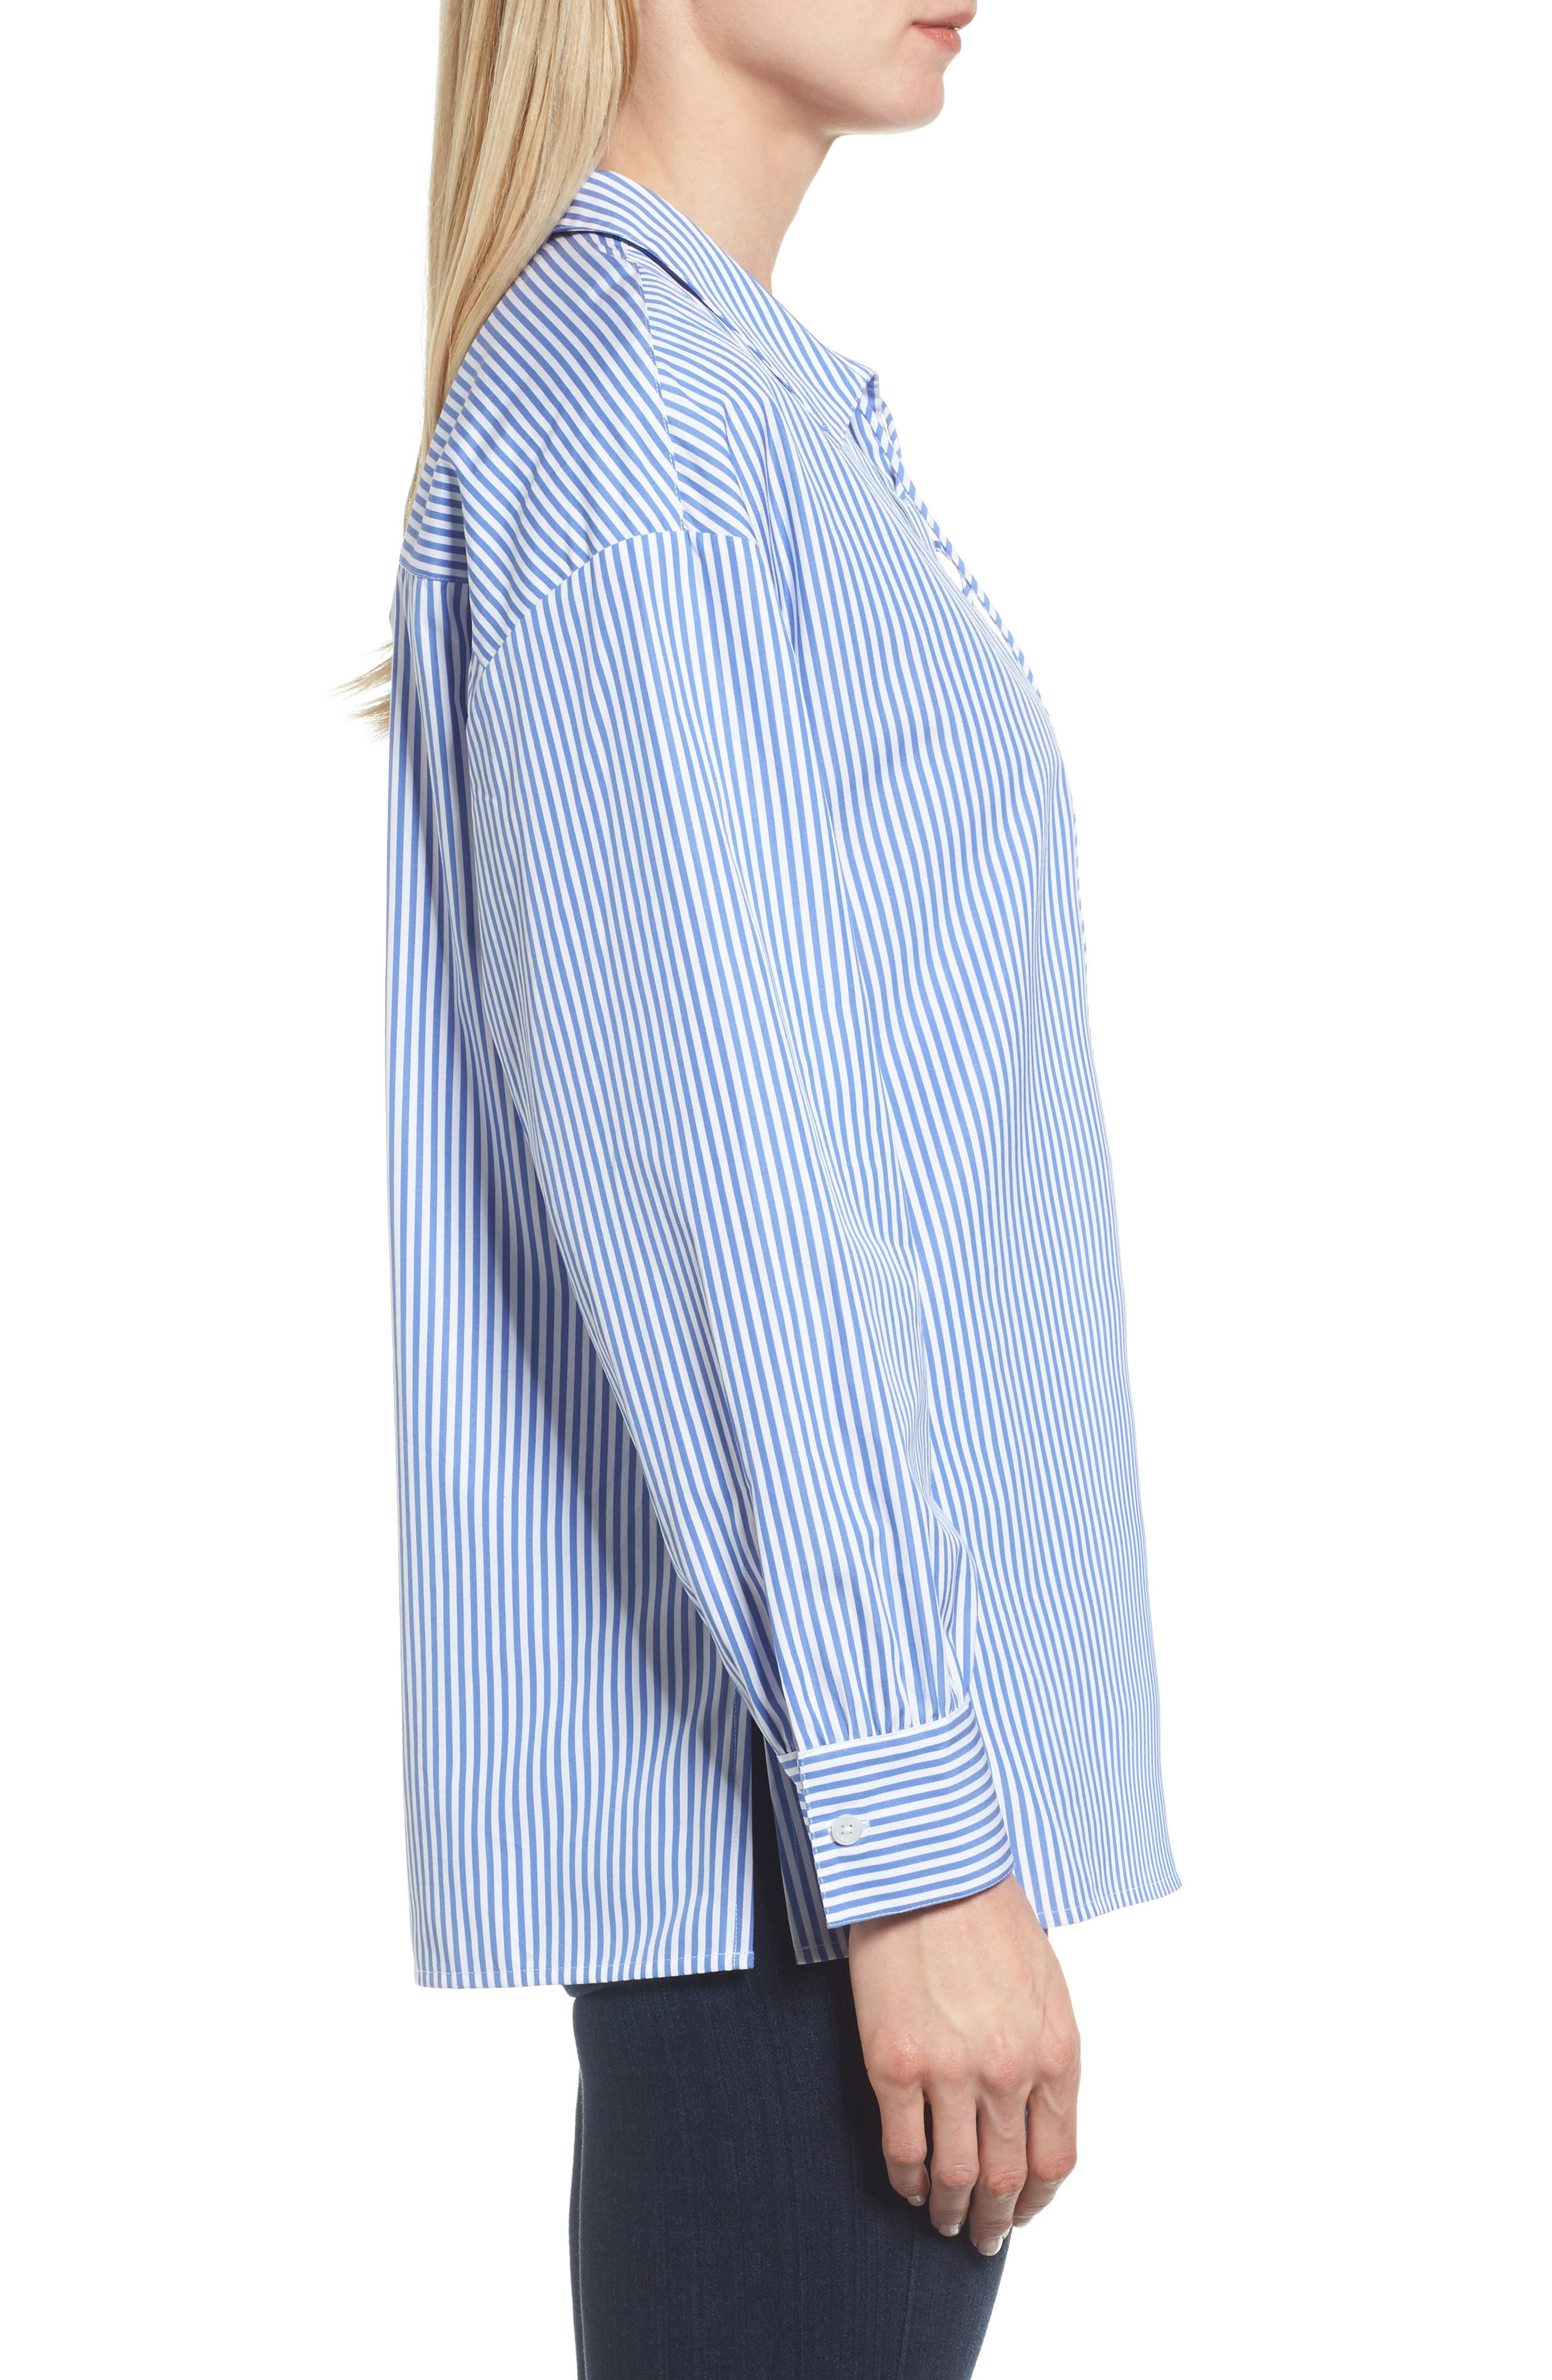 Lace-Up Stripe Shirt,                             Alternate thumbnail 4, color,                             Blue/ White Stripe